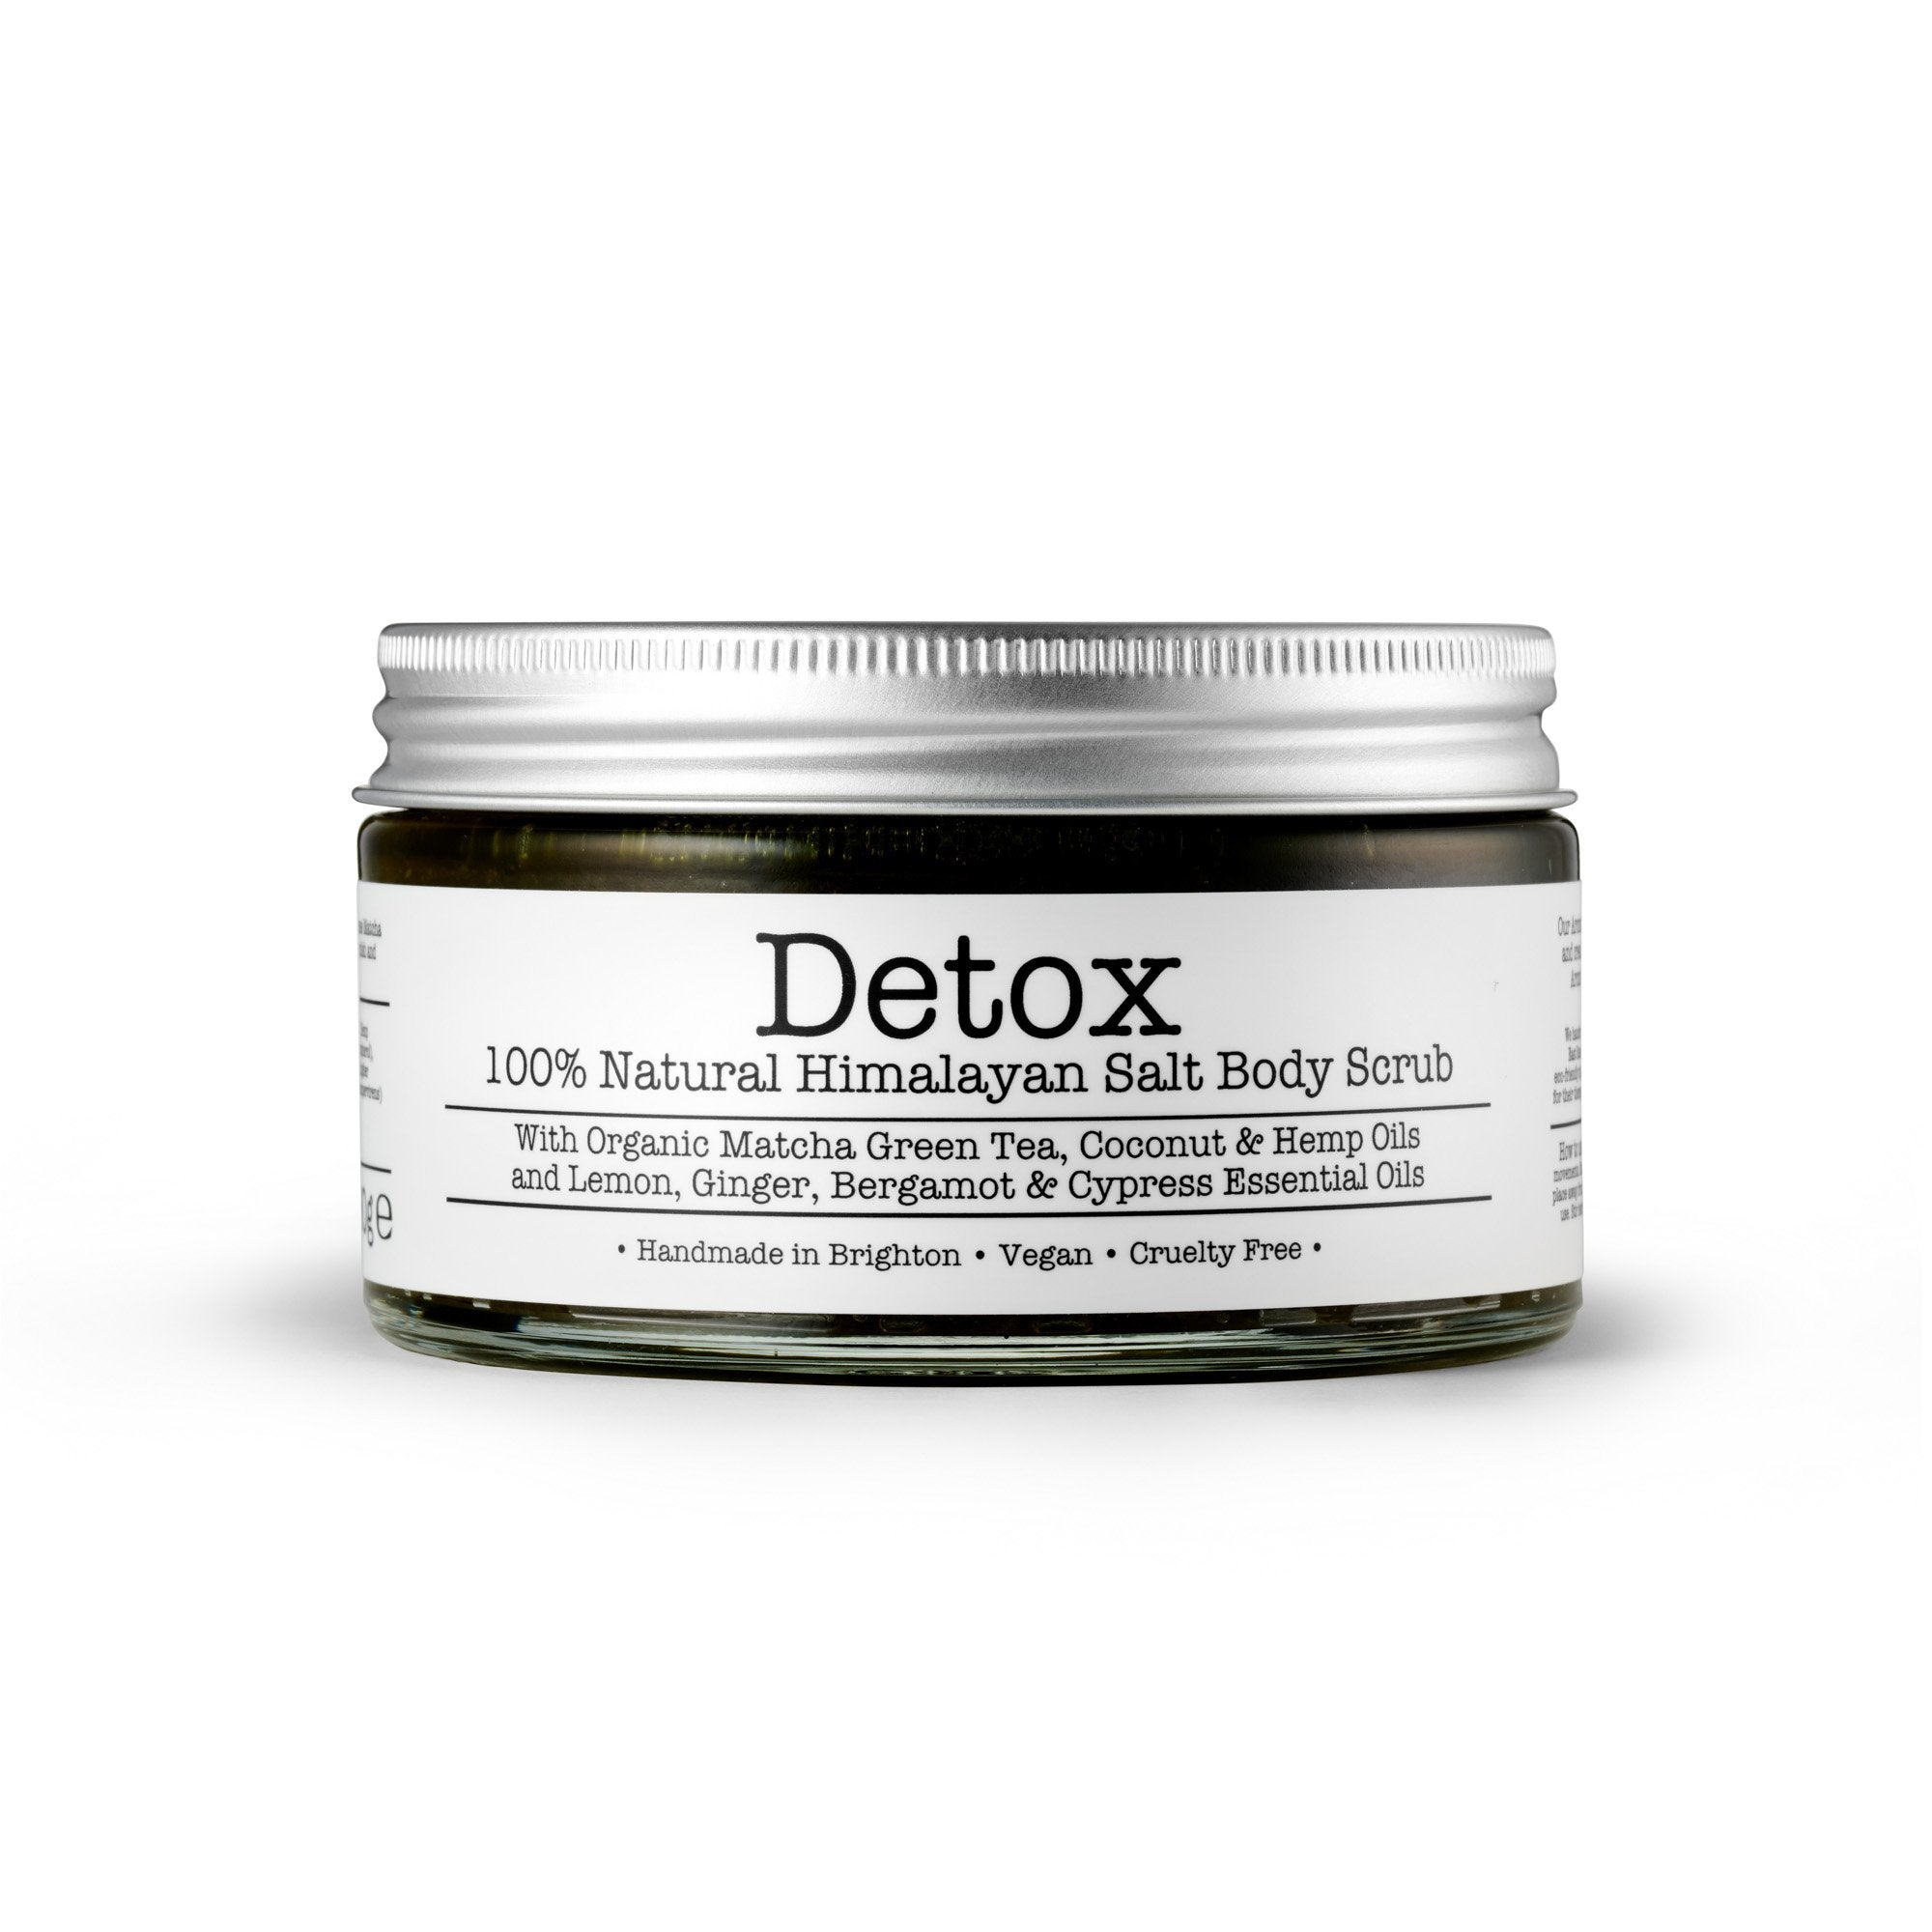 Detox Himalayan Salt Body Scrub by Corinne Taylor. 100% natural, vegan, plant based, cruelty free. Made with a combination of organic Coconut, Hemp and Sweet Almond Oils along with vitamin E and organic Lemon, Ginger, Bergamot and Cypress essential oils.